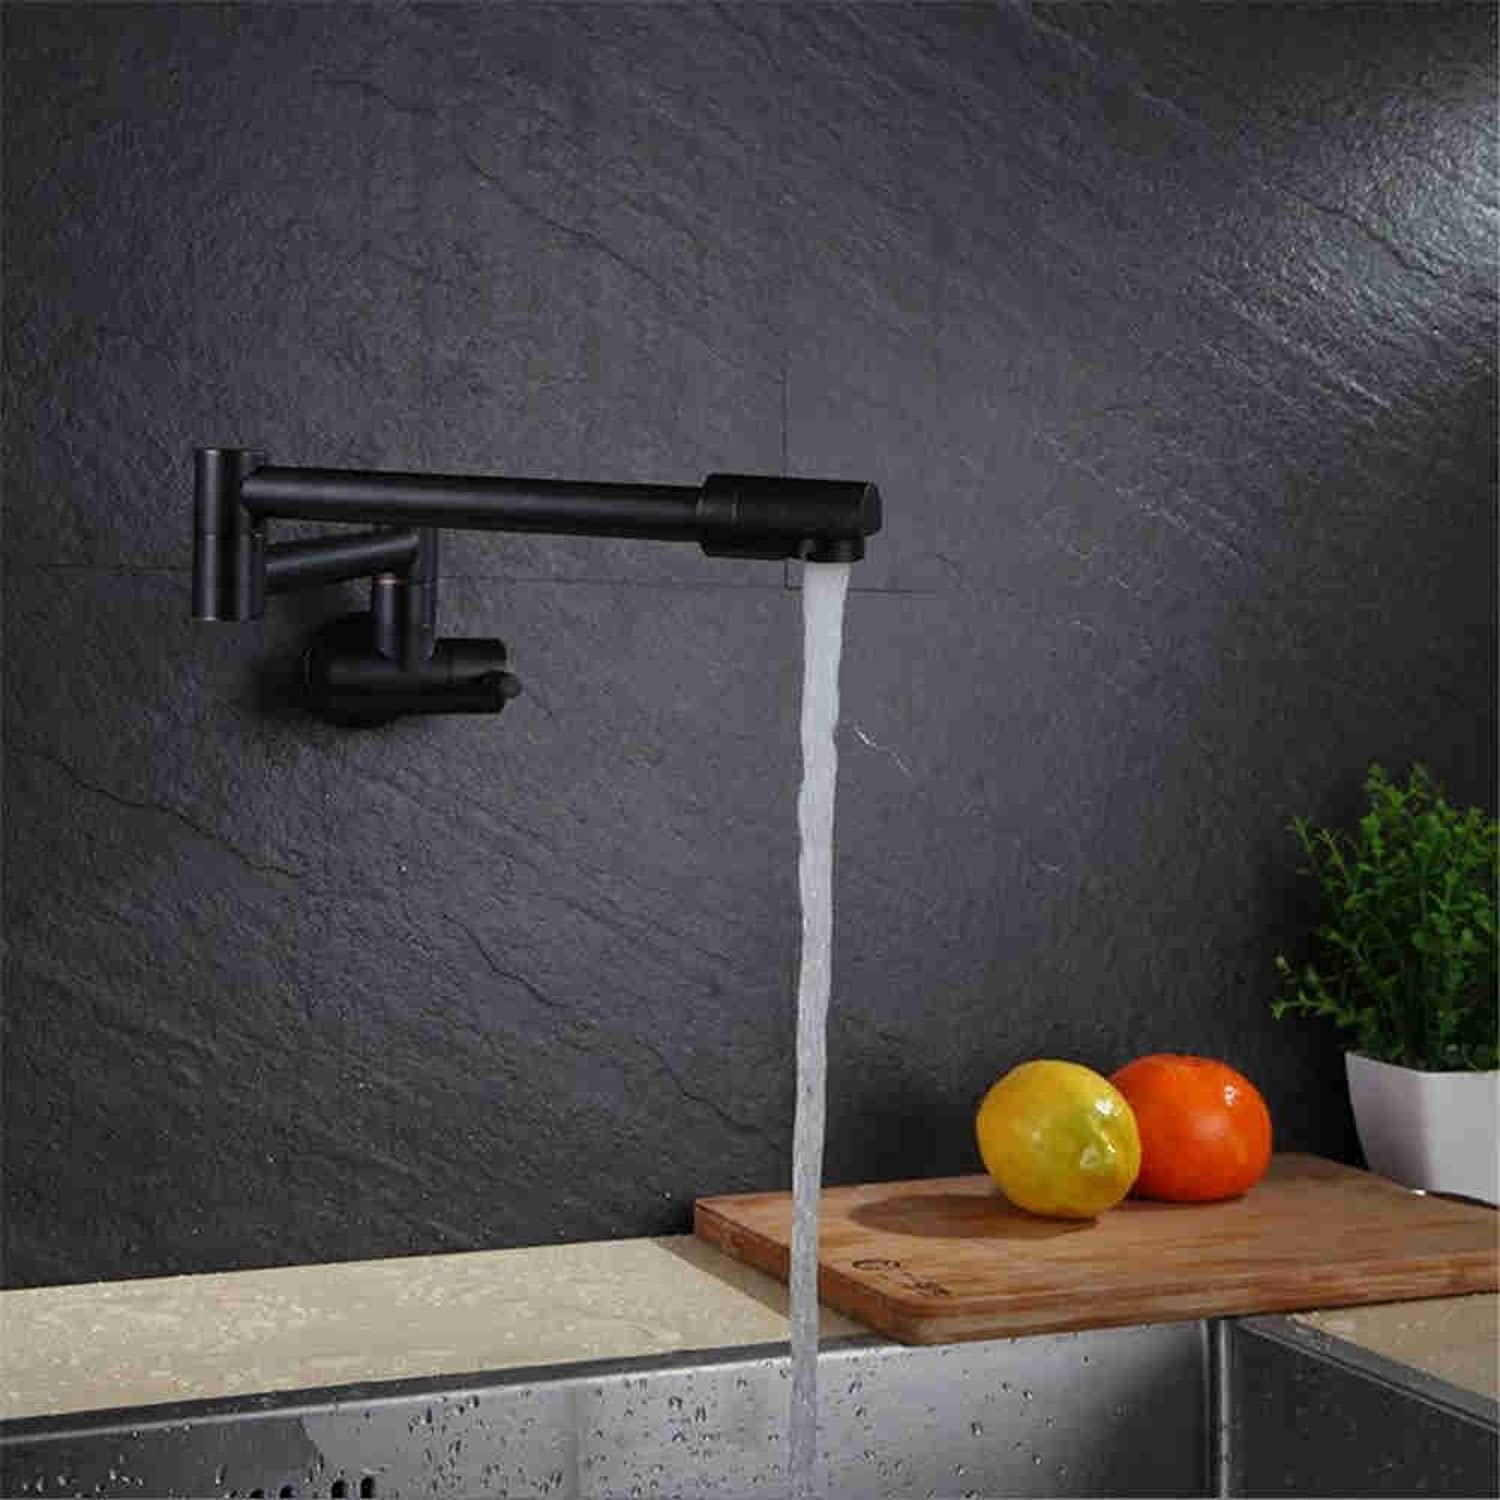 Gyps Faucet Basin Mixer Tap Waterfall Faucet Antique Bathroom Flush folding kitchen faucet dish washing basin sink faucet laundry pool into the wall mounted single cold tap C